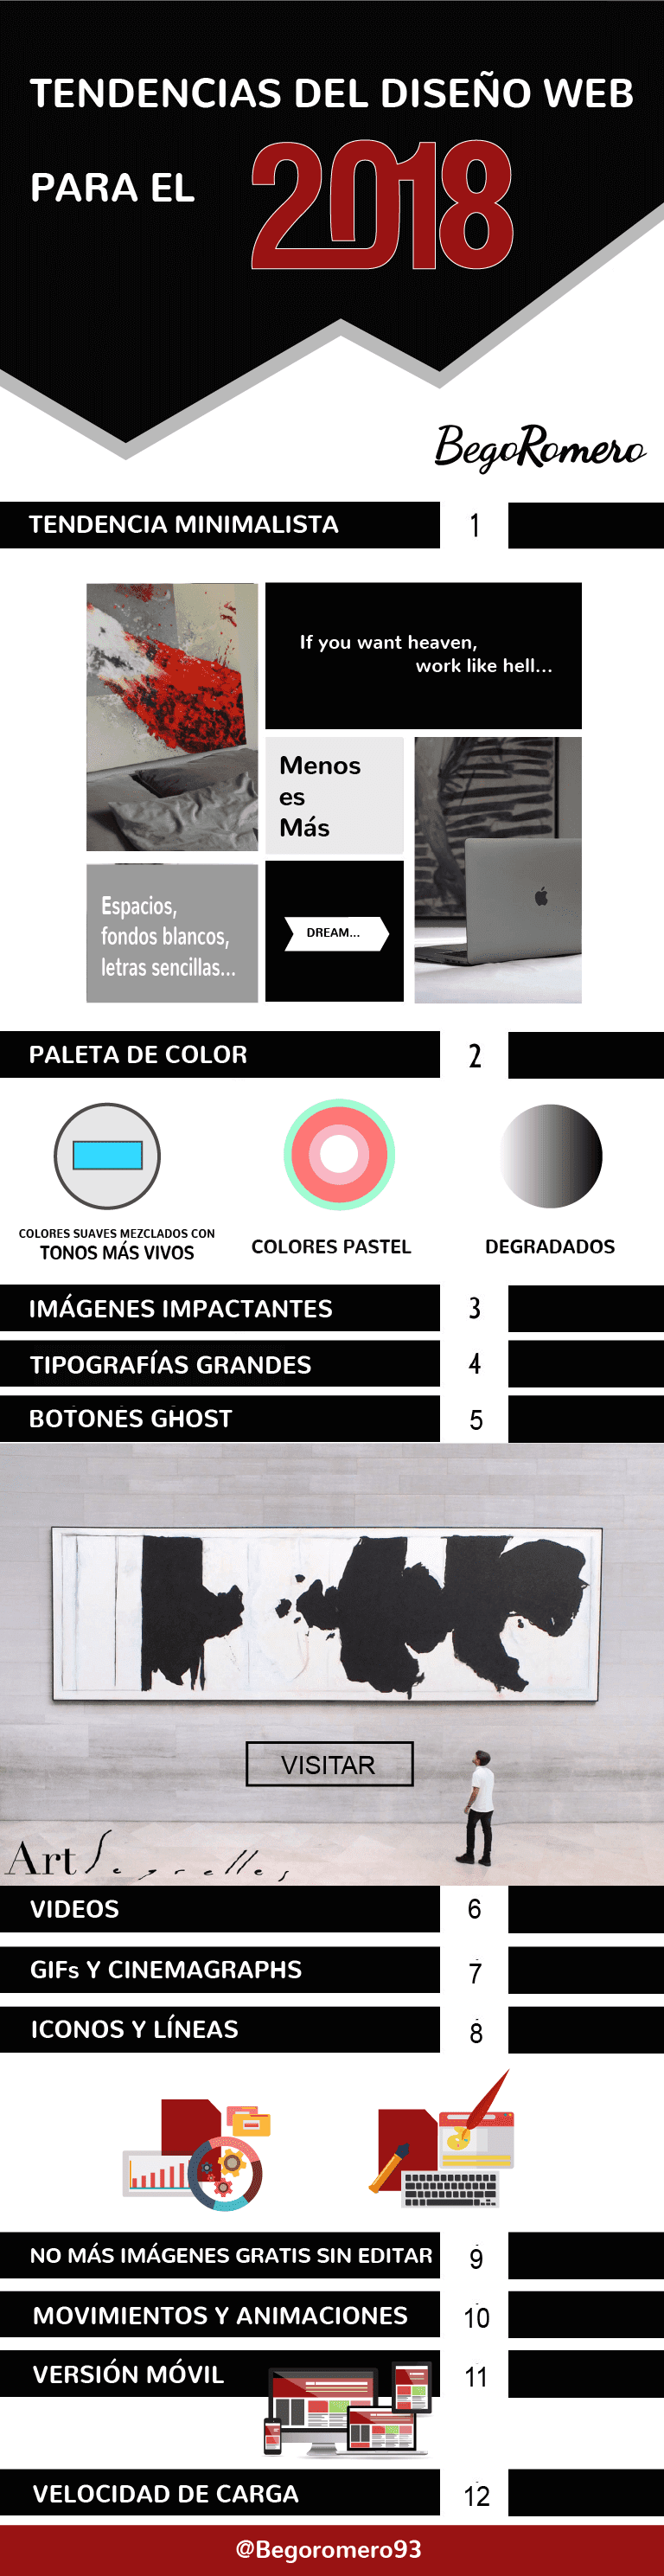 diseno-web-tendencias